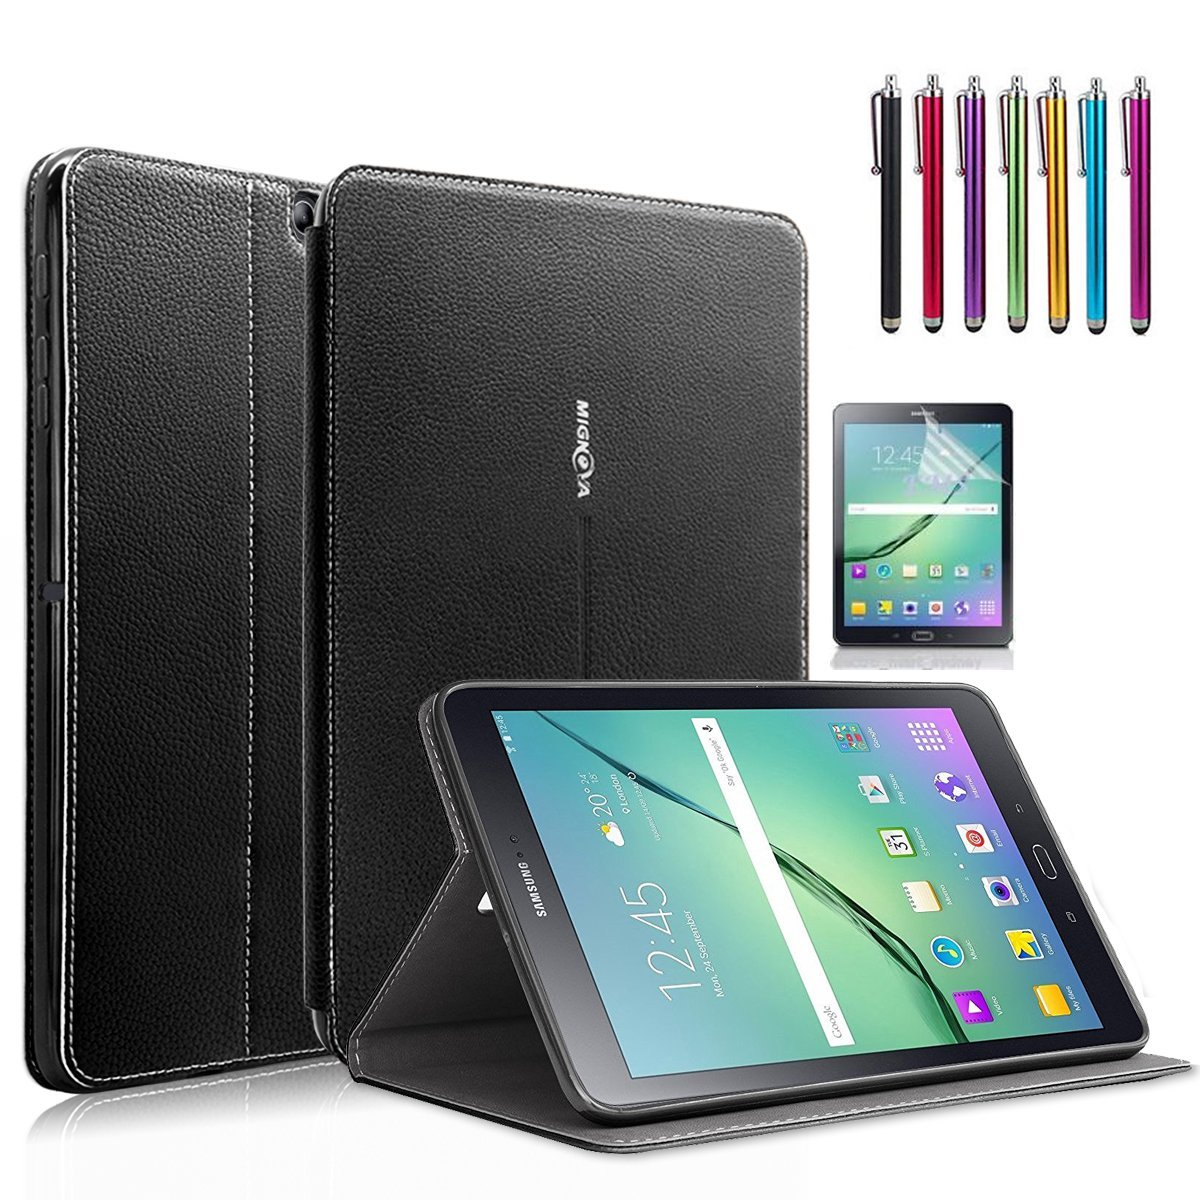 Samsung Galaxy Tab S2 8.0 Case, Mignova - Auto Sleep /Wake, Card Pocket, KickStand Feature, Premium PU Leather Folio Smart Cover Case + Screen Protector Film and stylus pen (Black)